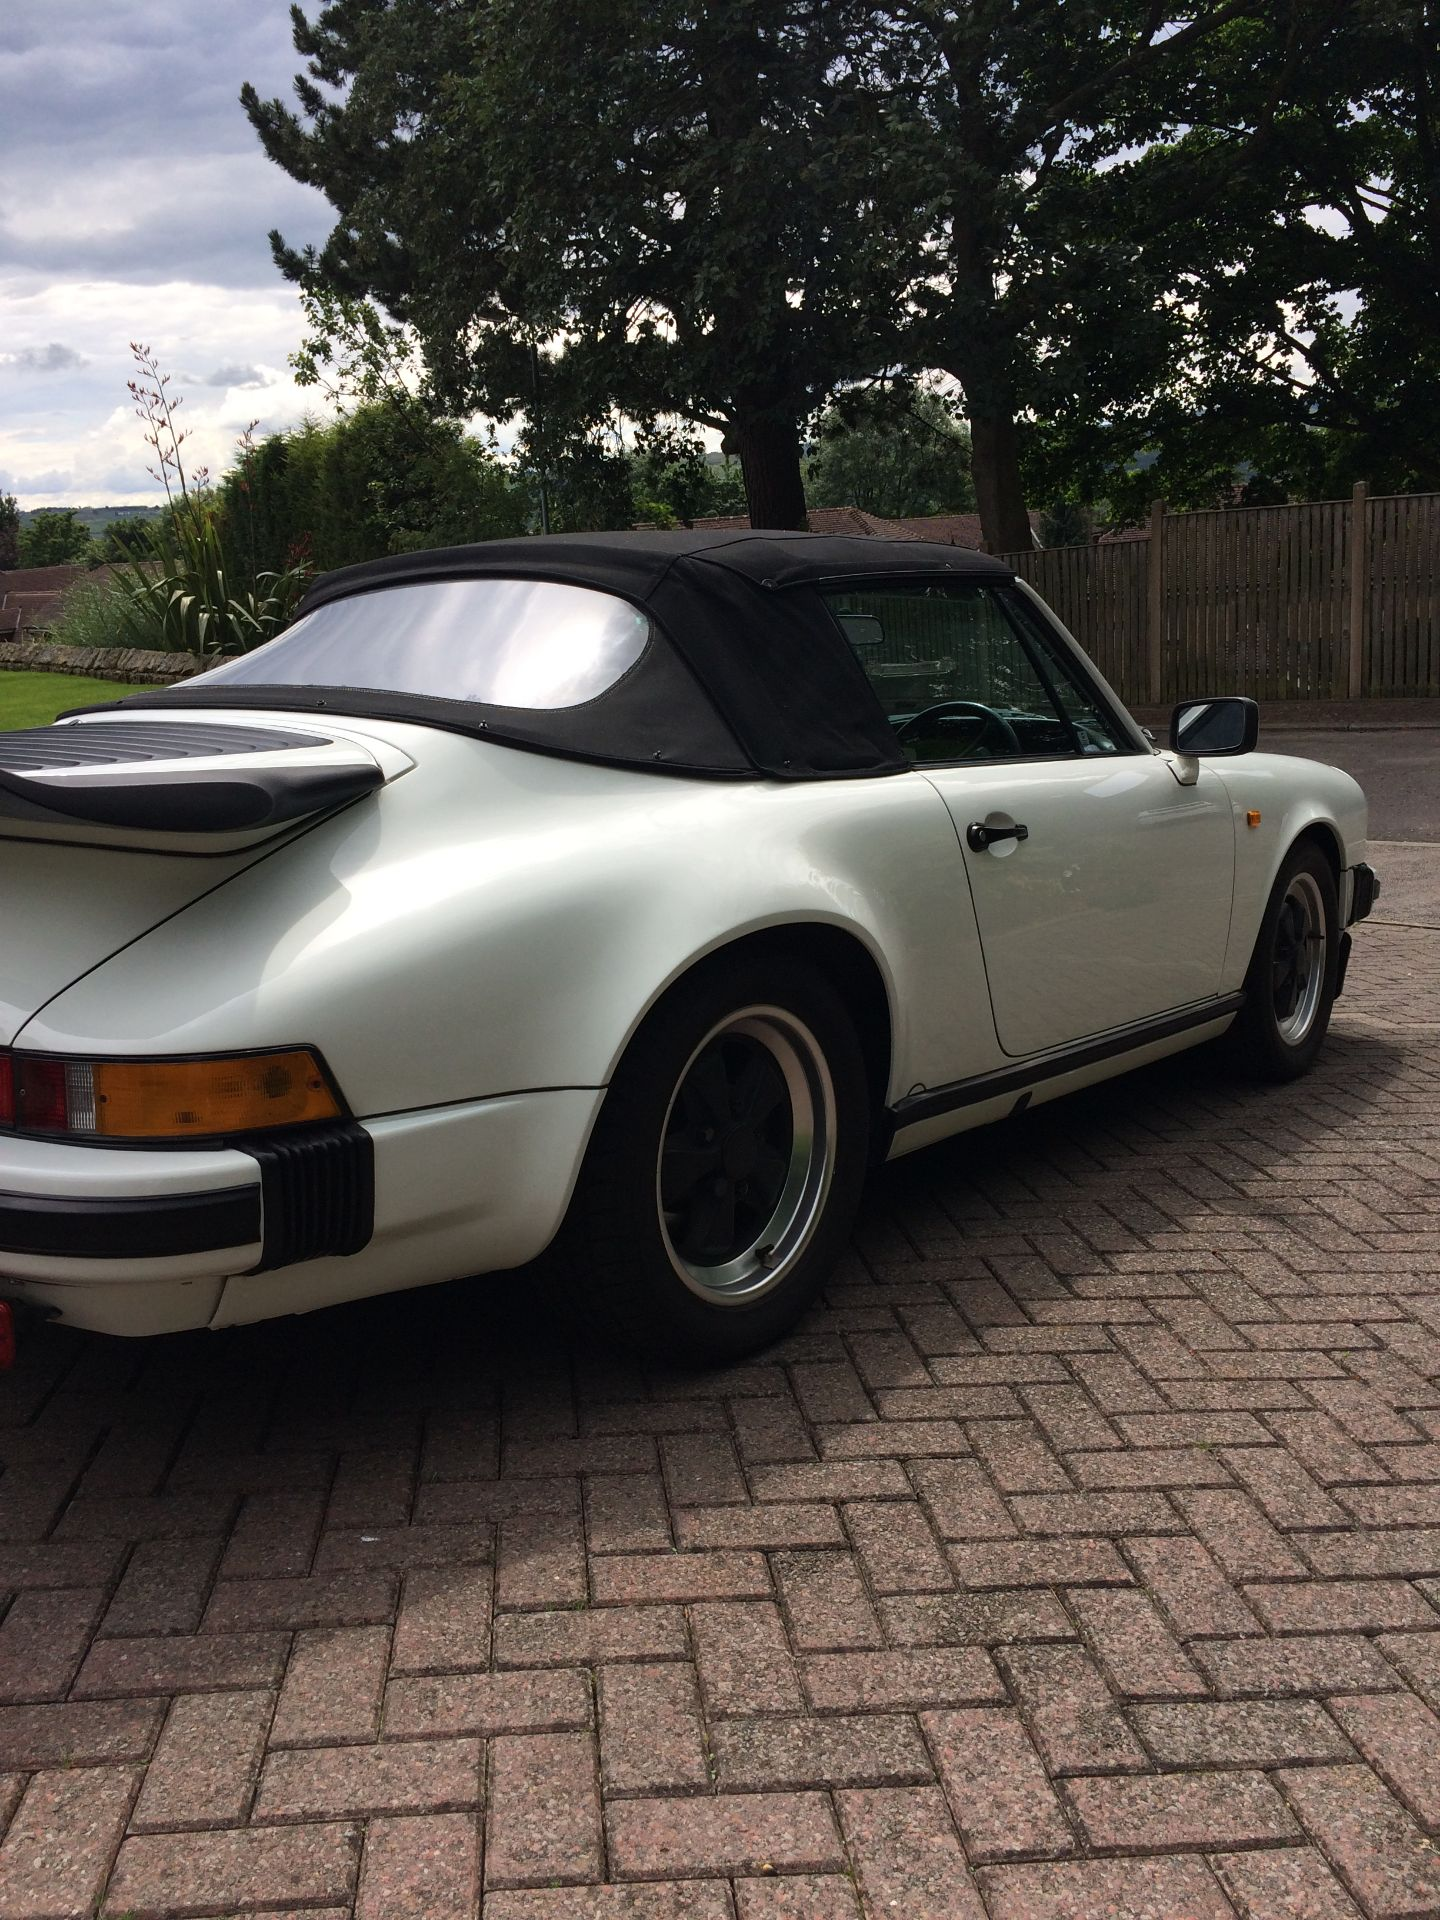 Lot 13 - 1986 Porsche Carrera Cabriolet